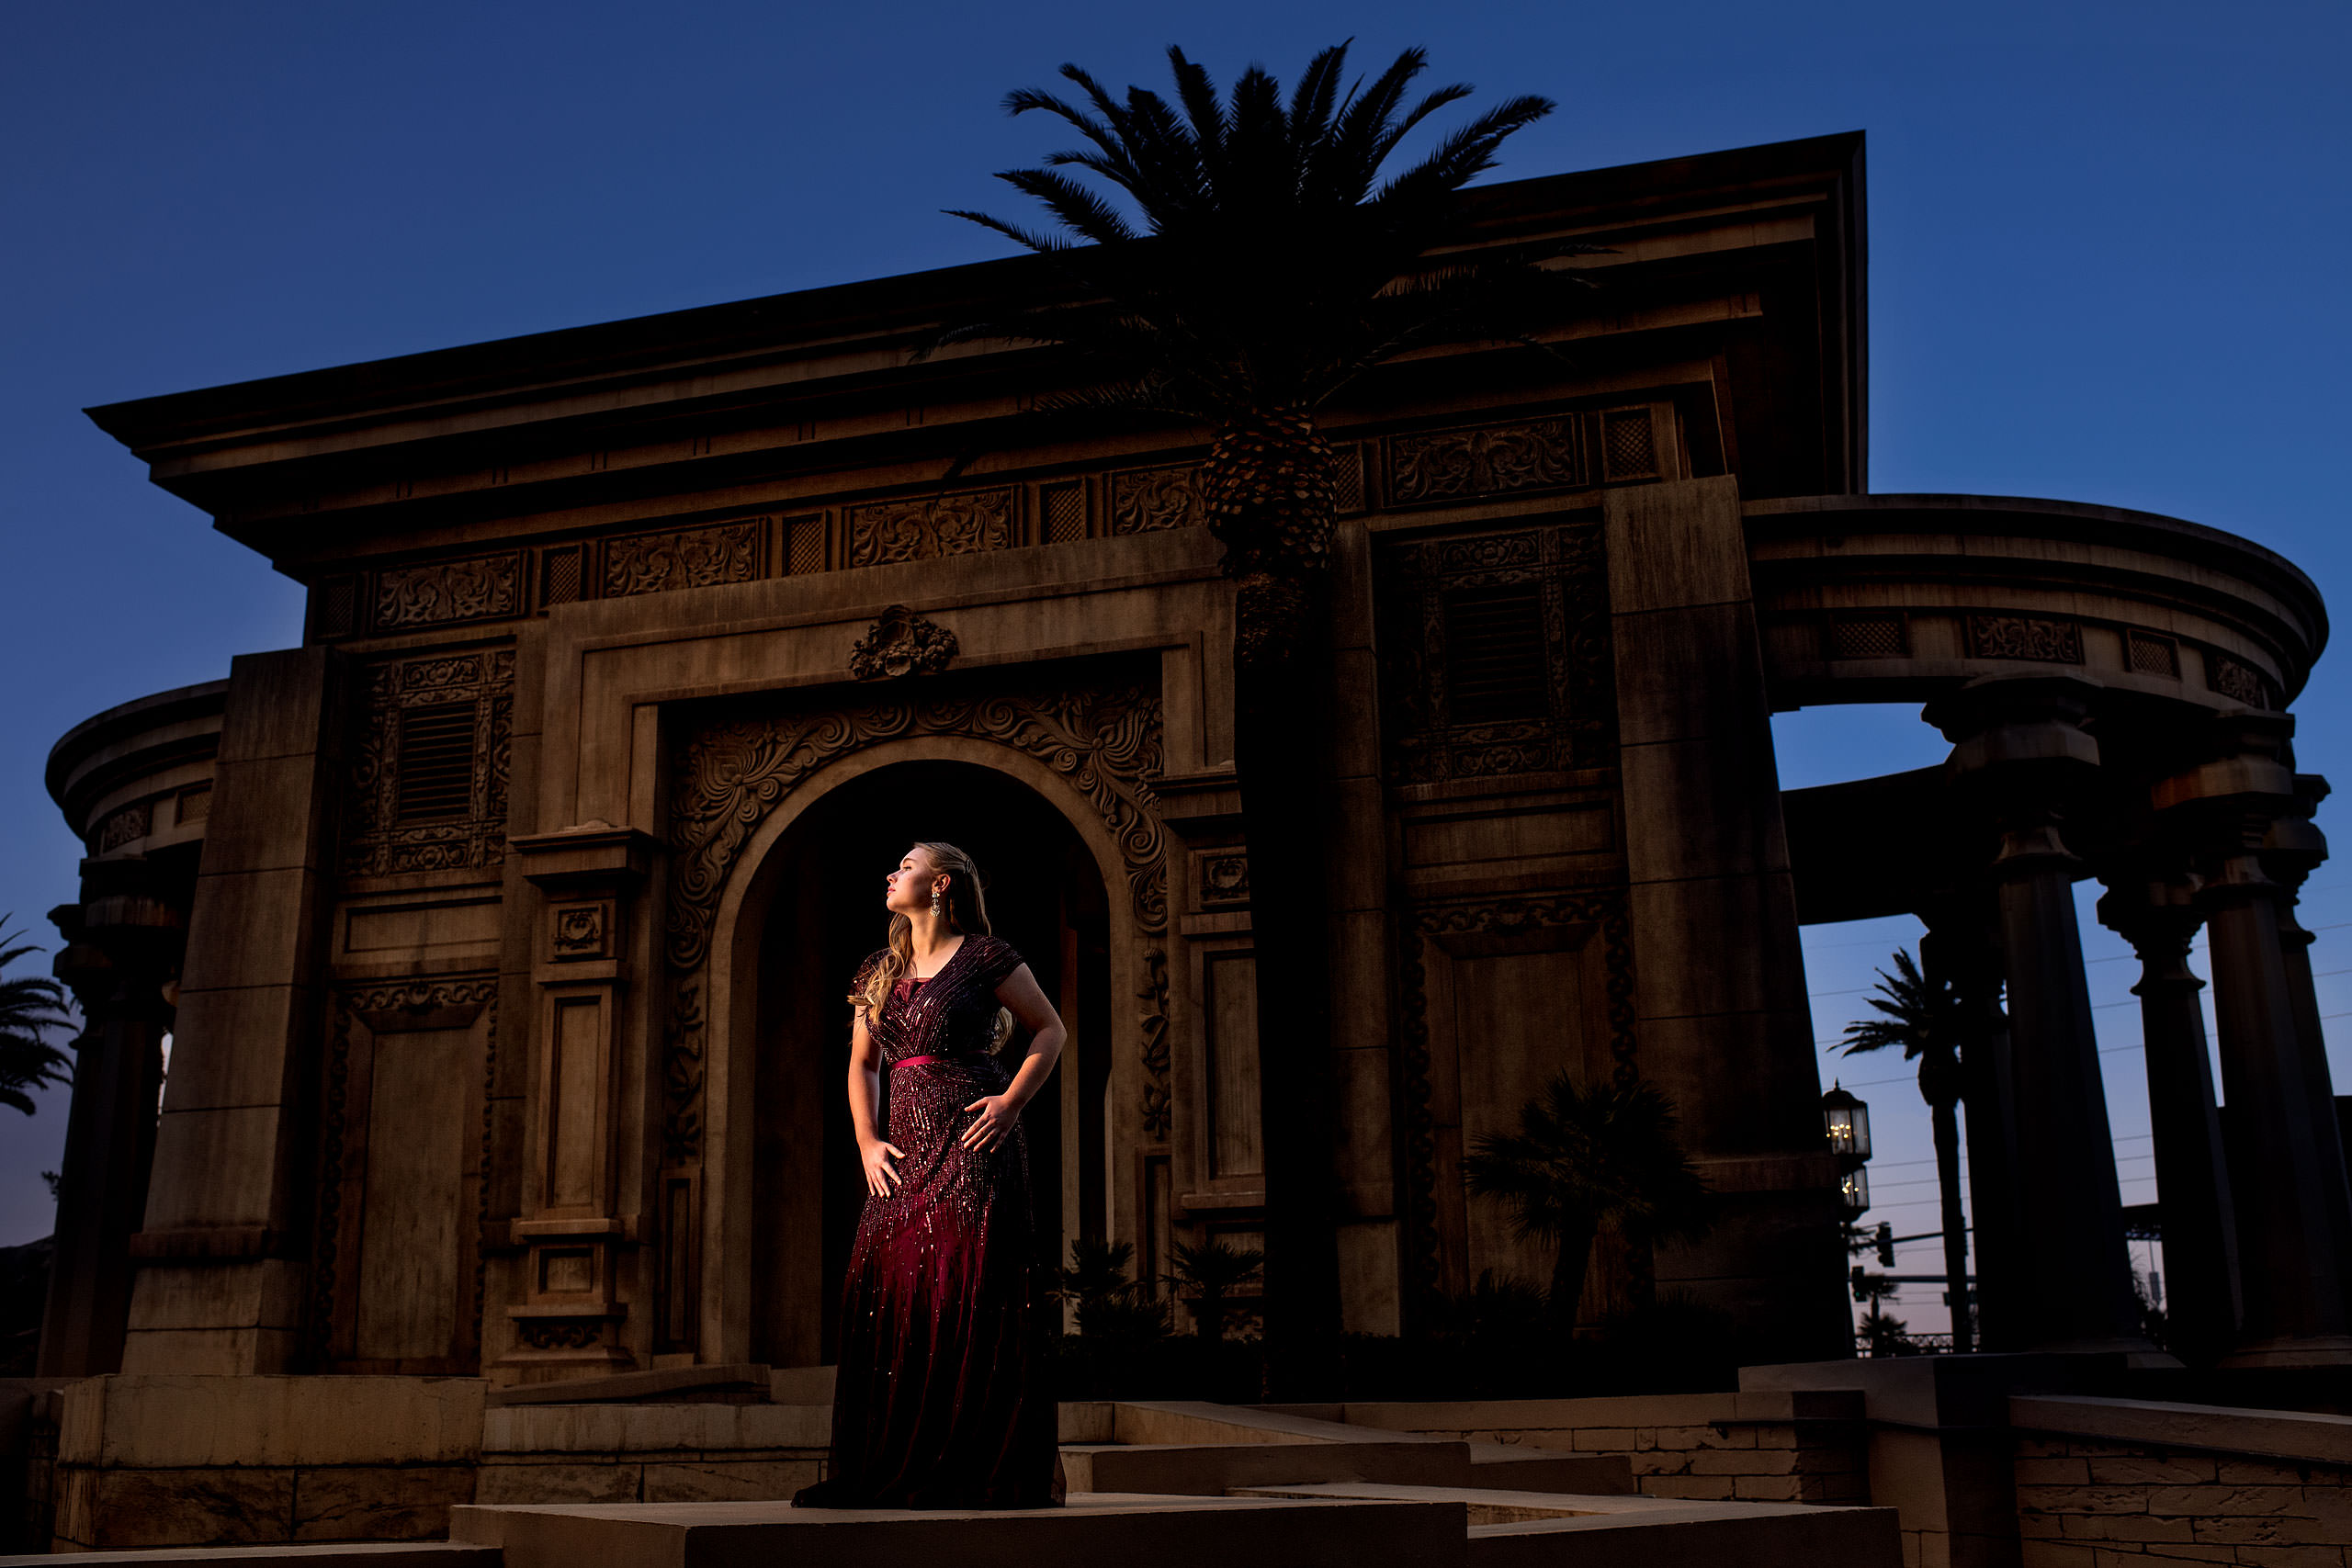 model woman wearing a red dress standing in front of the Mandalay Bay hotel in Las Vegas - sean leblanc photography mentorship